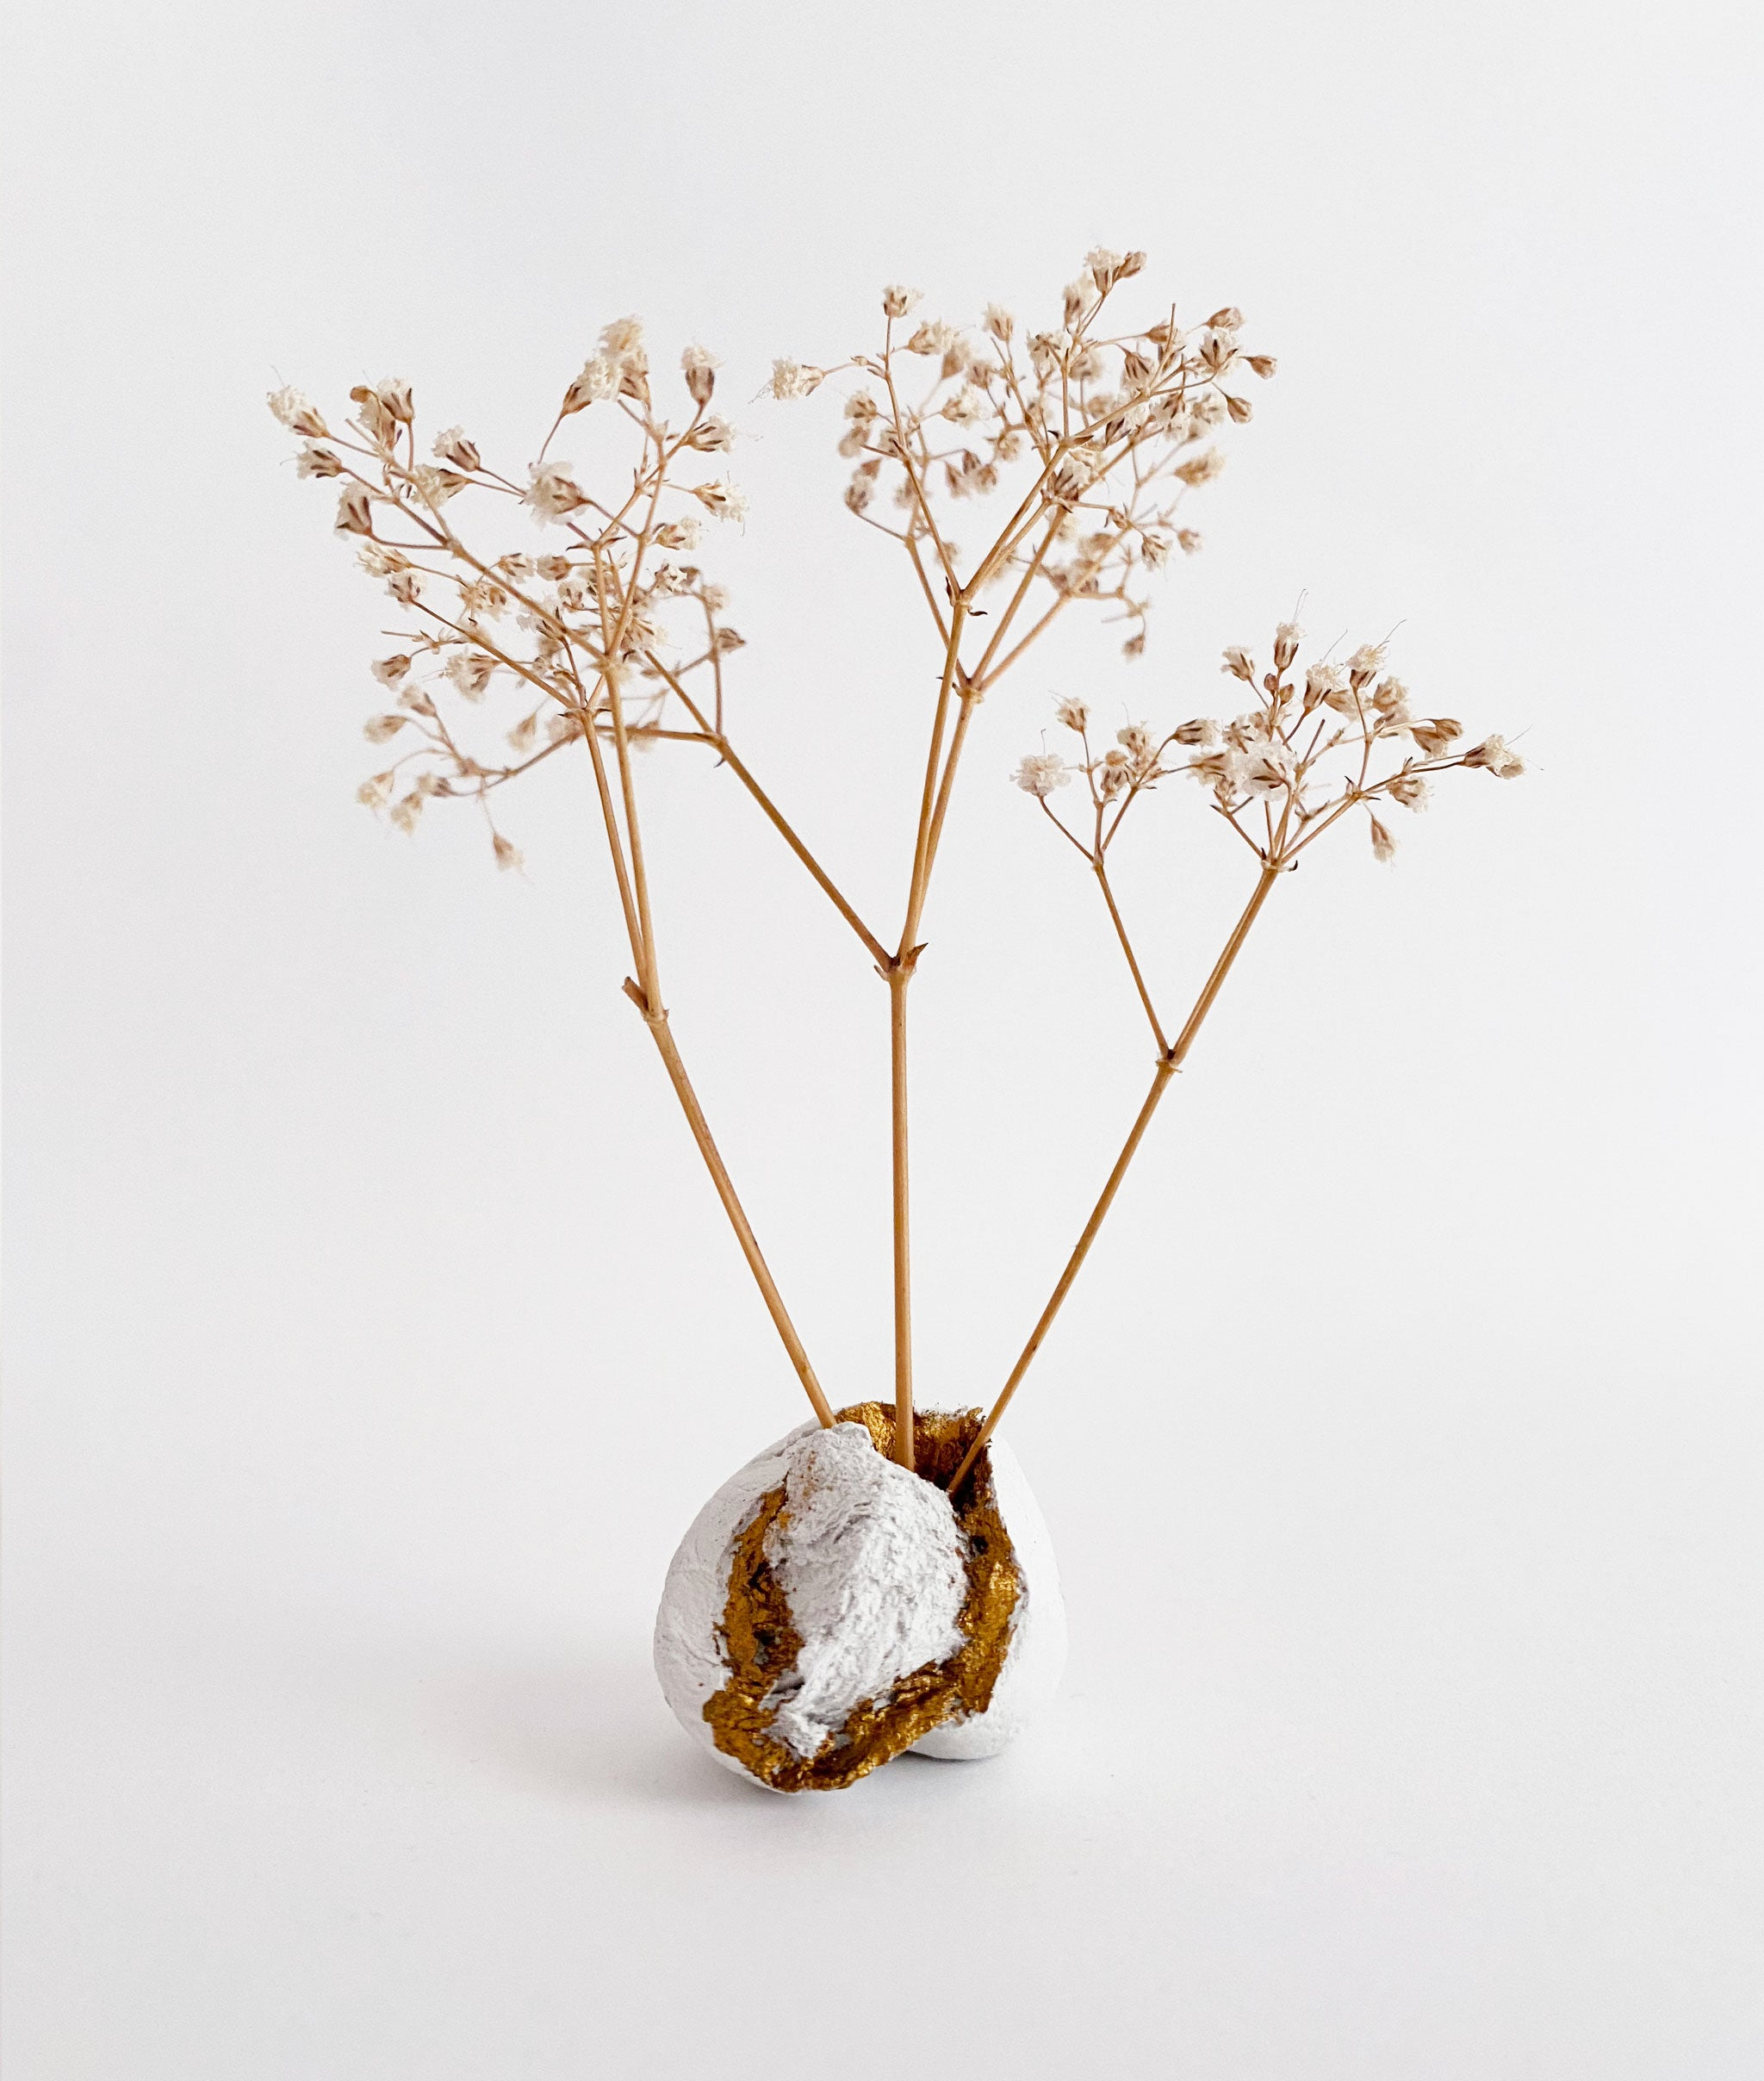 small sculpture made from dried flowers and clay with small touches of gold